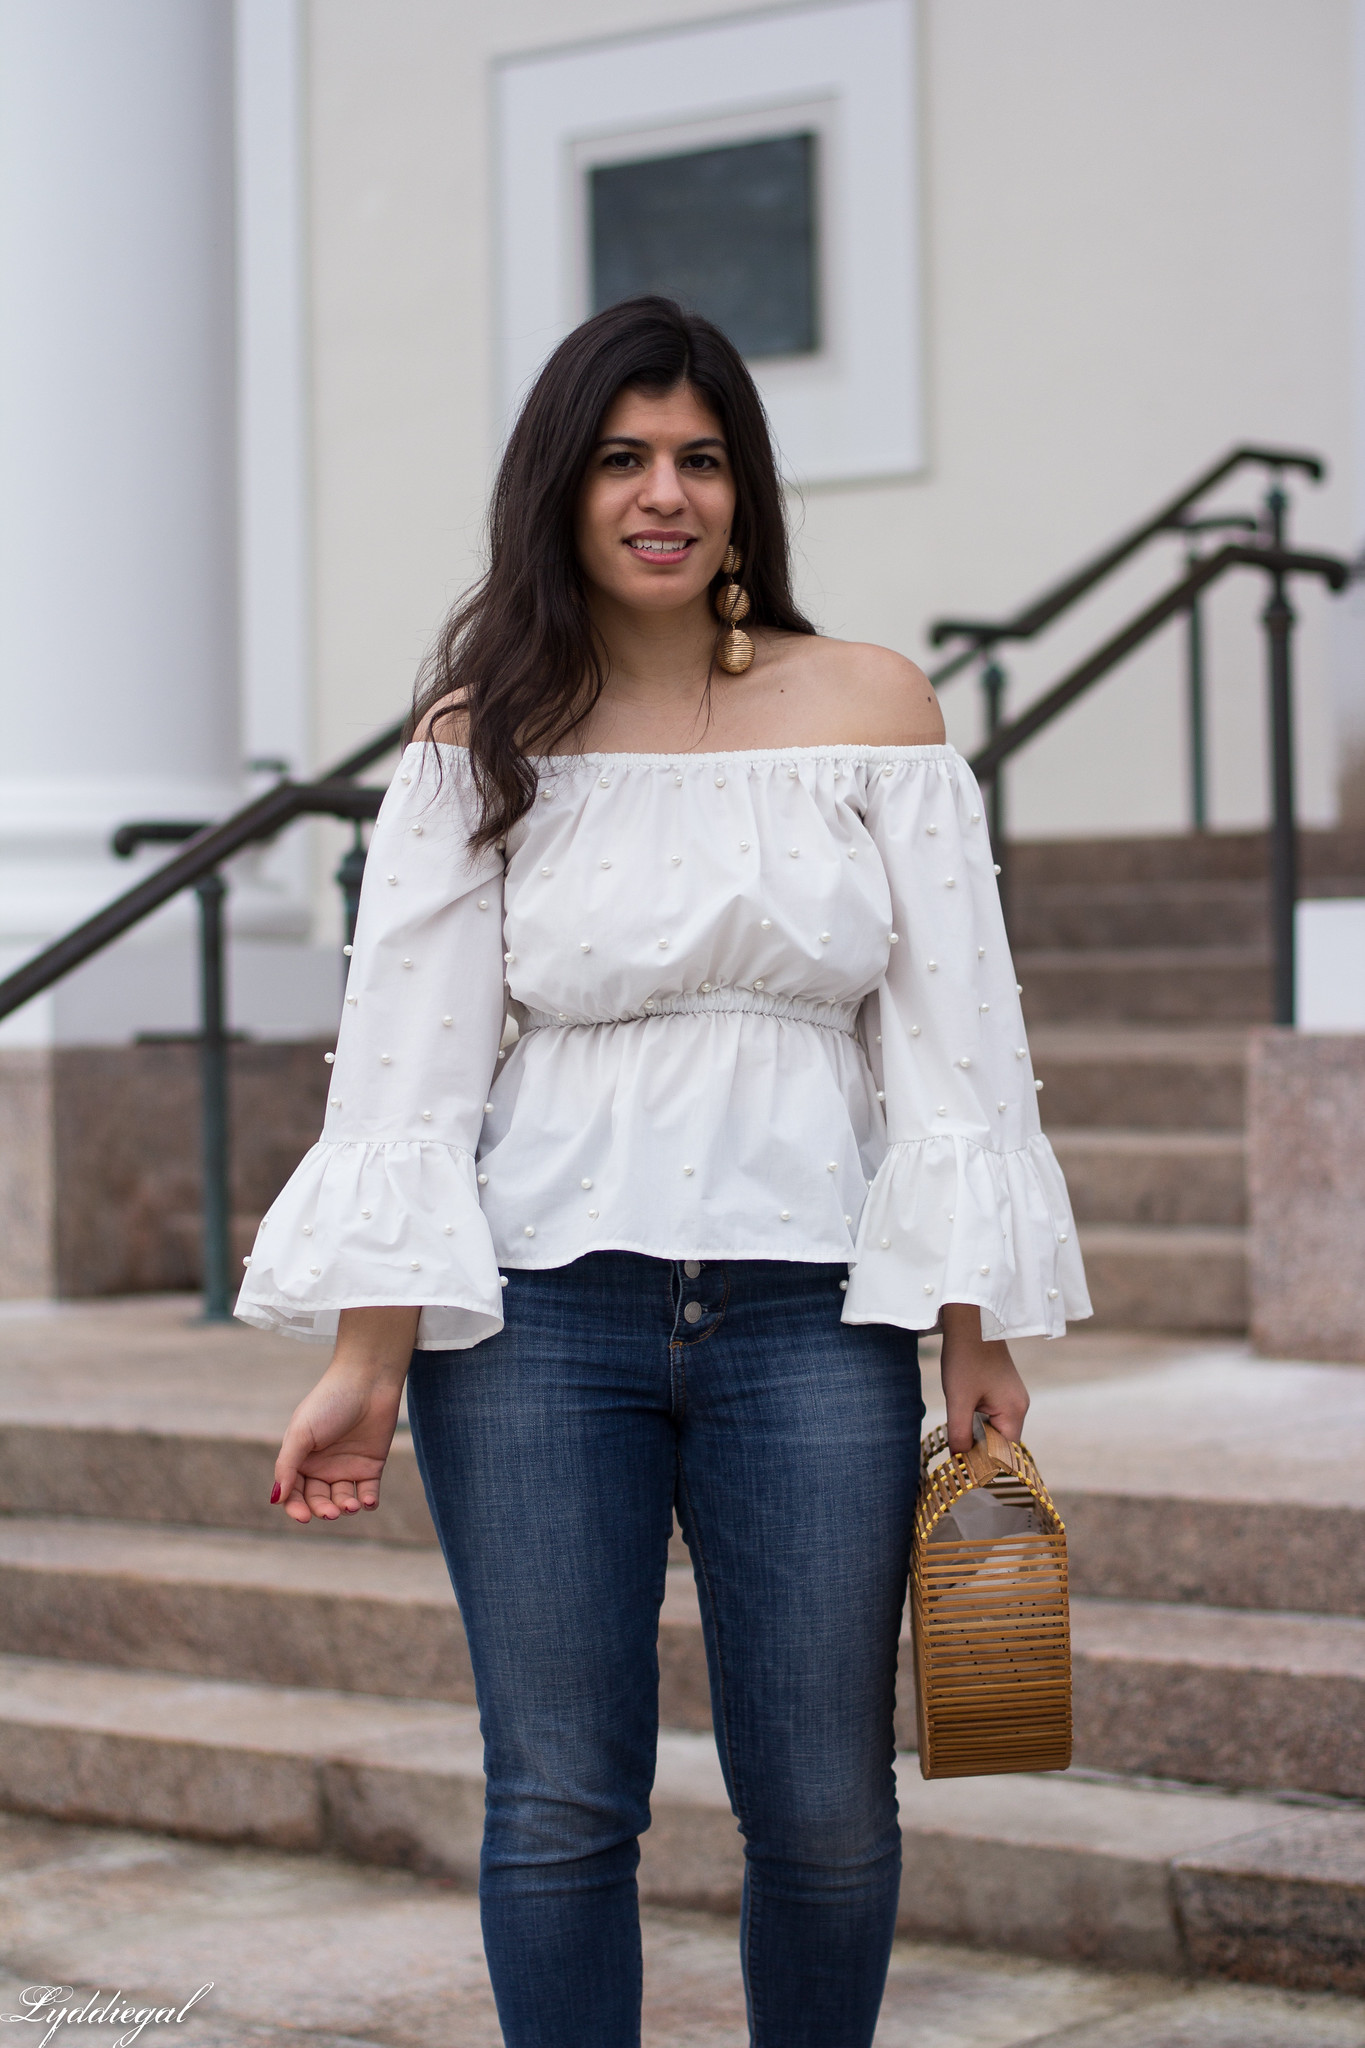 off the shoulder pearl embelleshed blouse, distressed denim, bamboo purse-3.jpg